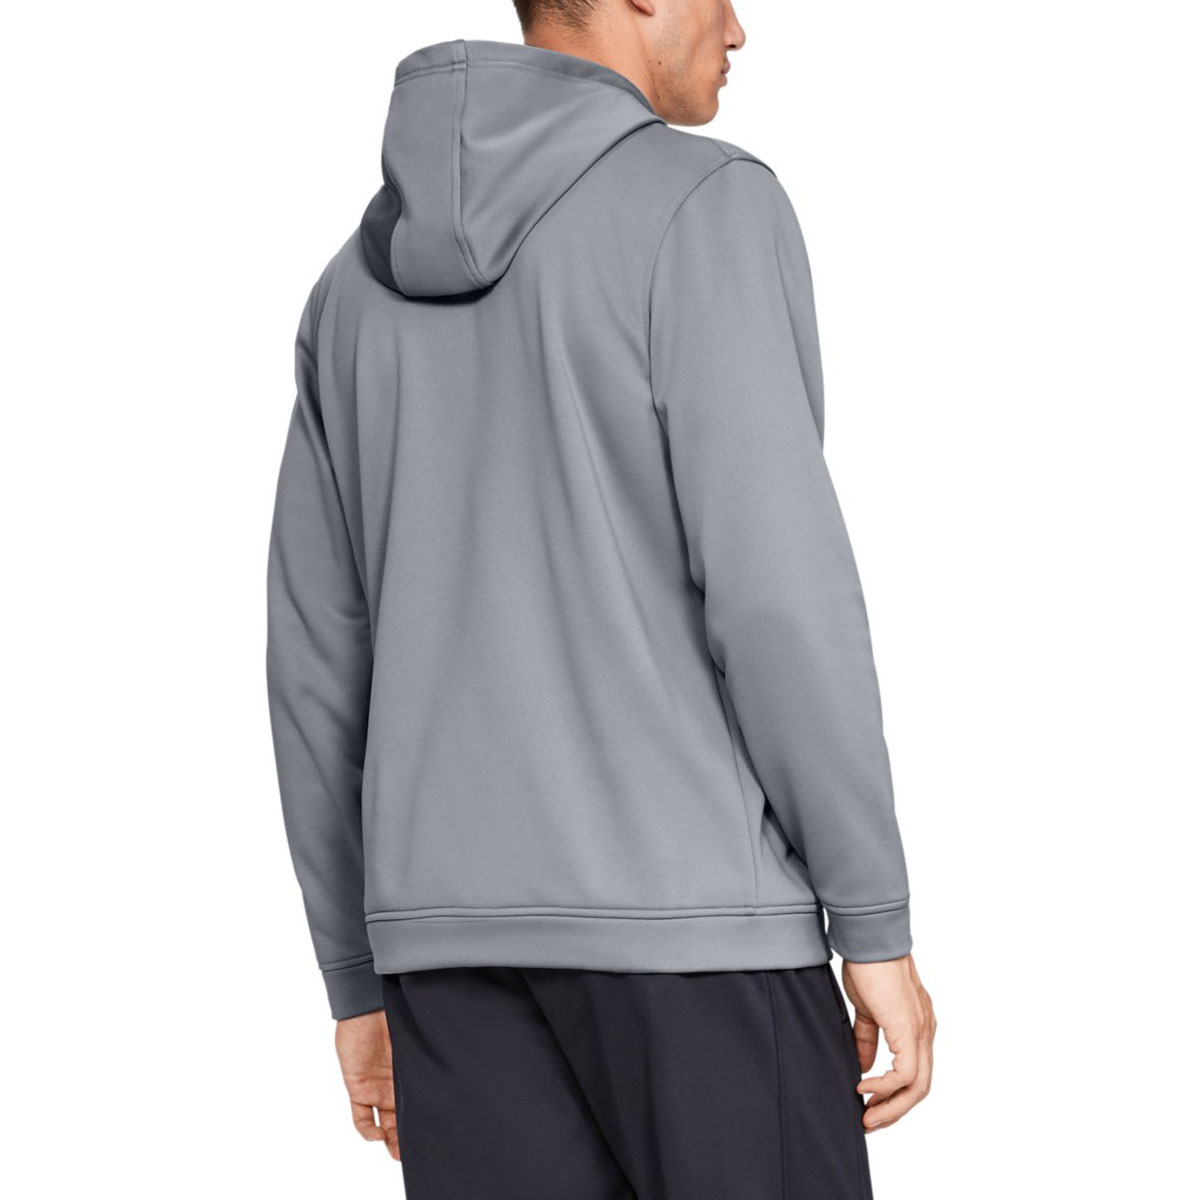 Under-Armour-Mens-Performance-Fleece-Graphic-Hoodie-Hoody-45-OFF-RRP thumbnail 7